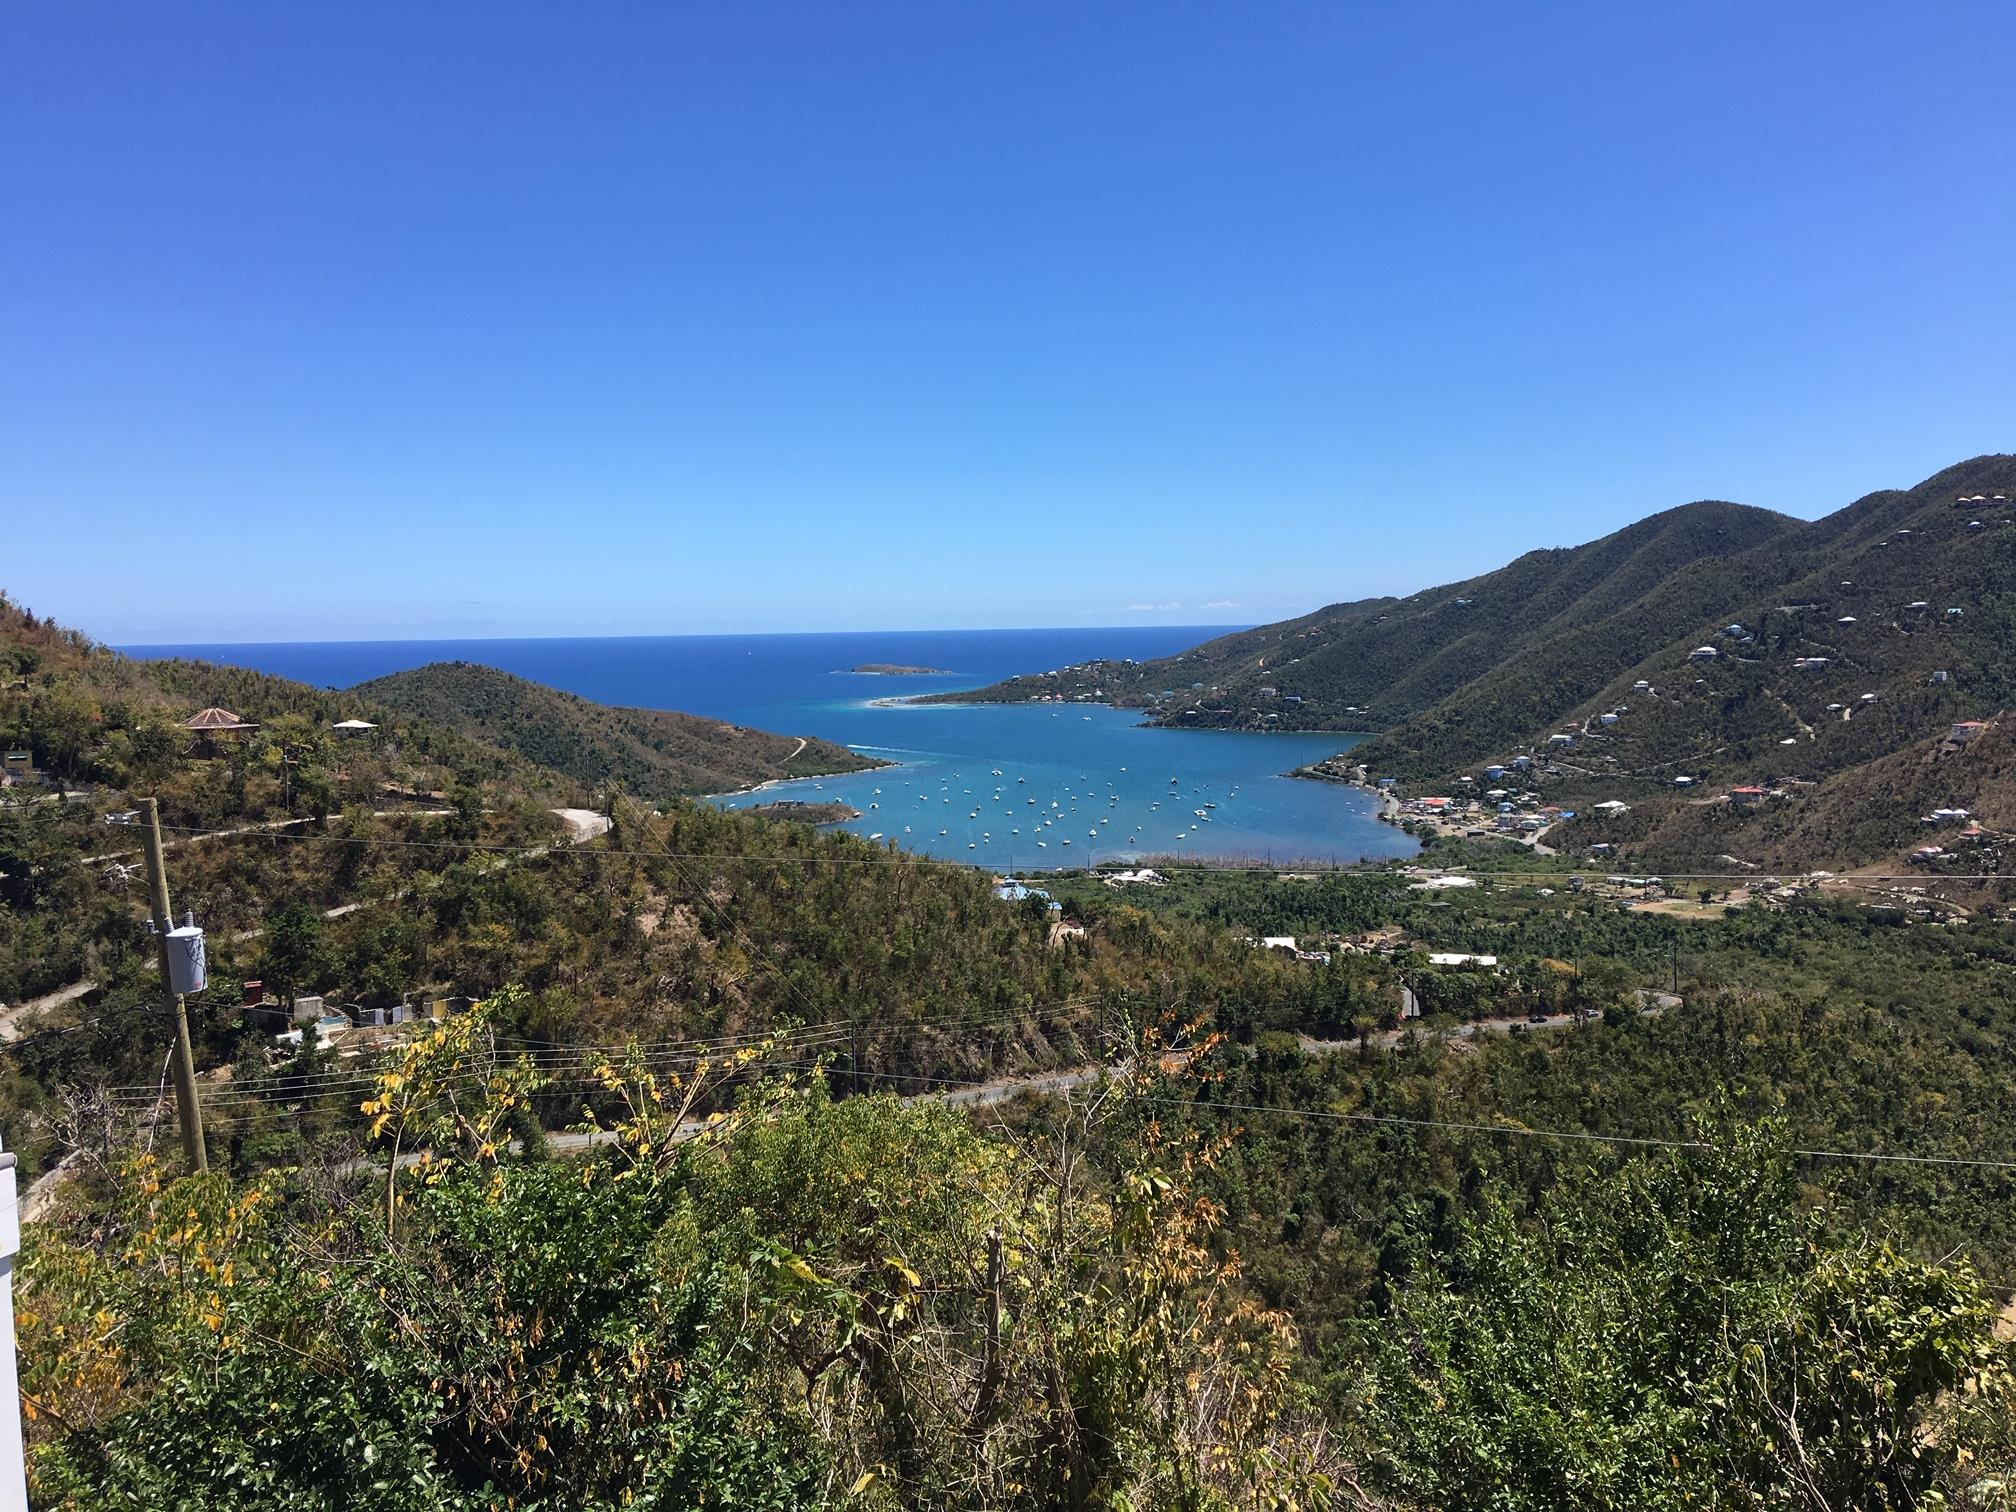 Direct view of Coral Bay